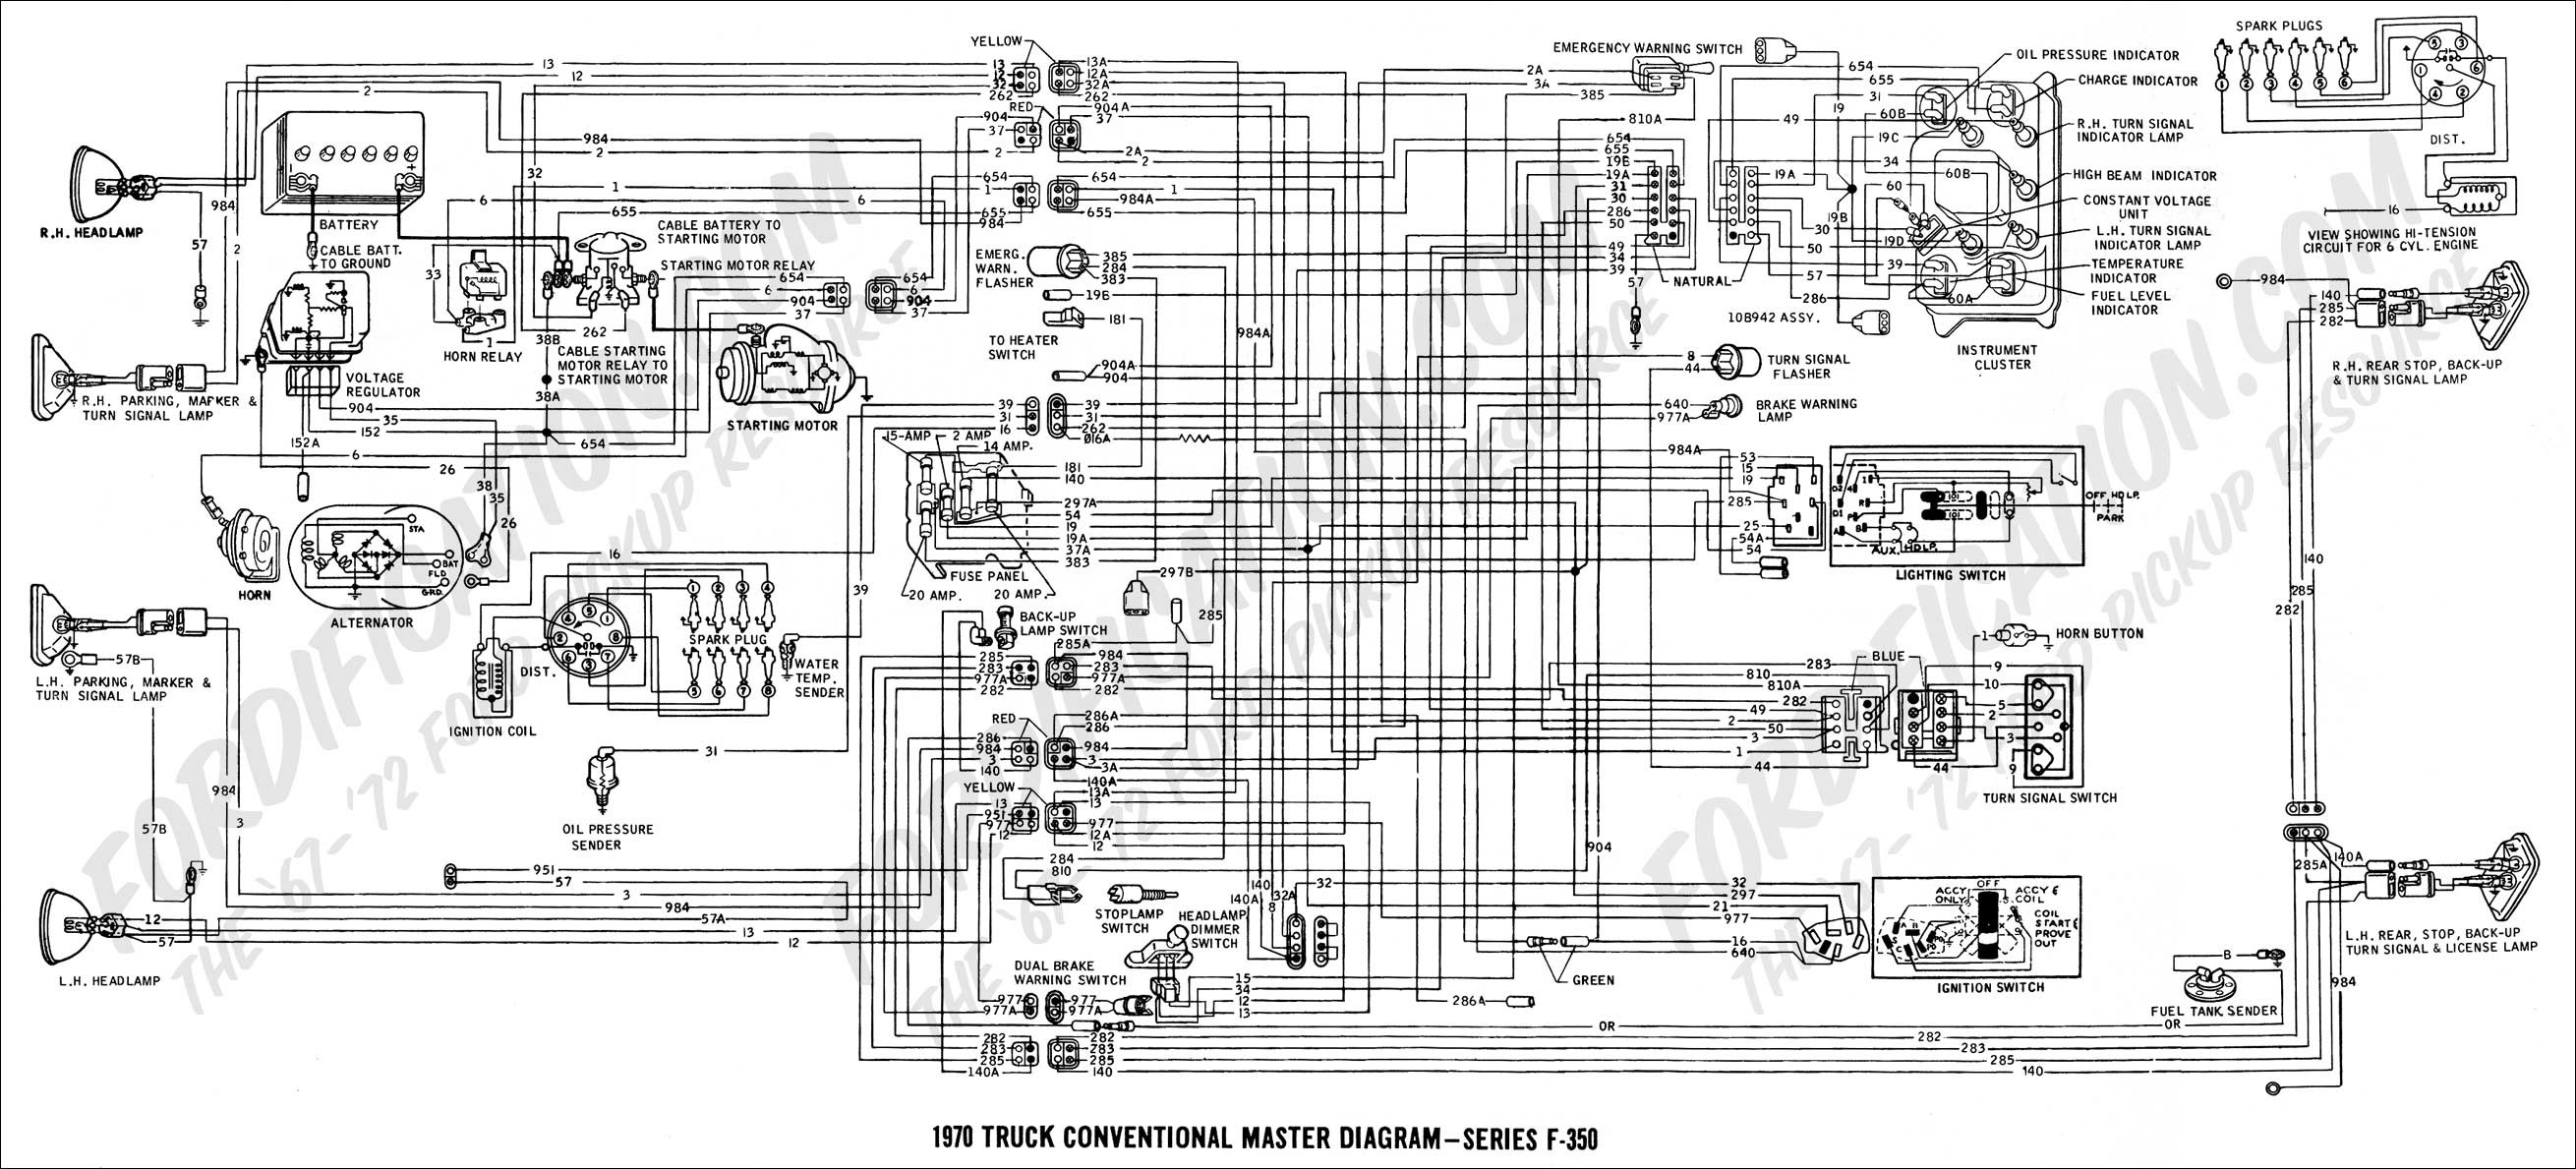 1983 toyota Pickup Wiring Diagram Diagram as Well ford F 350 Wiring Diagram  In Addition ford